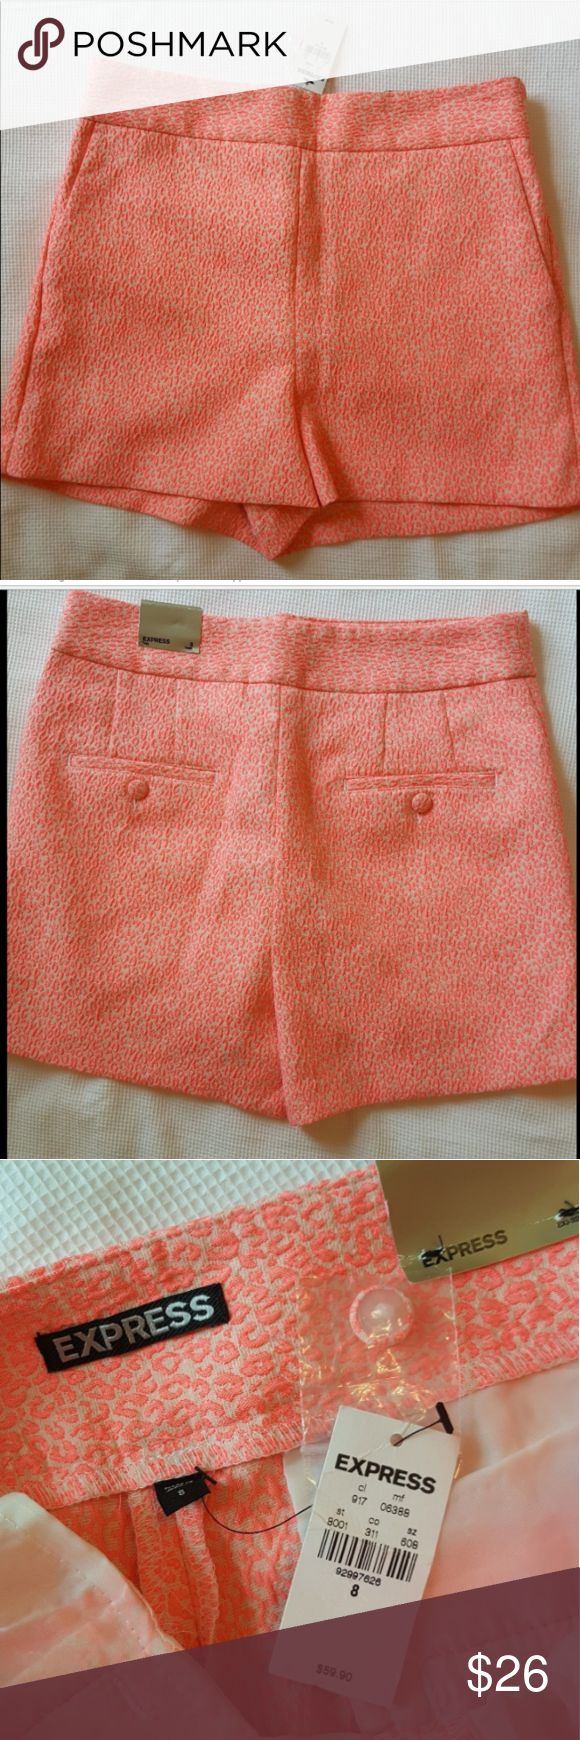 Express Sz 8 Shorts Hot Pink High Waisted Leopard Express Shorts, new with tags Women's size 8 High waist, size zipper, pockets Textured, Hot pink, animal print  Waist: 15 Inseam: 2.5 Rise: 13  Please see pictures for details. Express Shorts